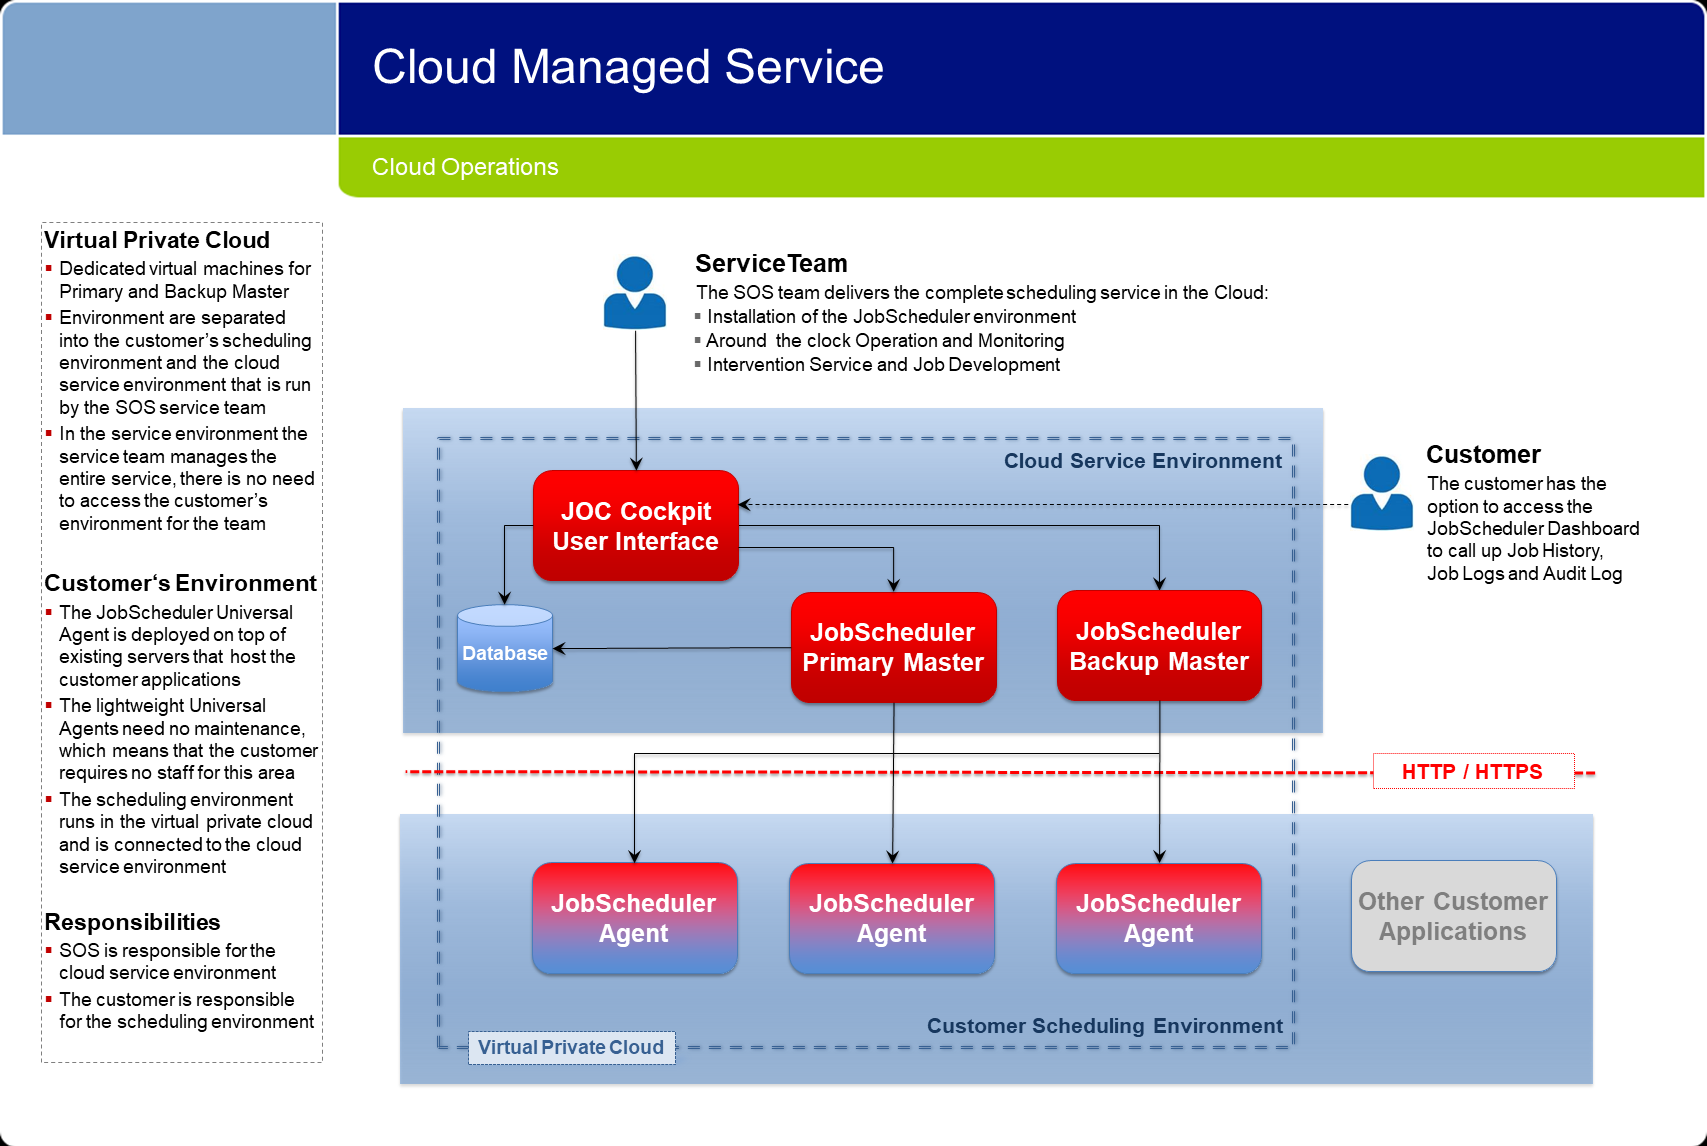 Cloud Operations: Cloud Managed Service